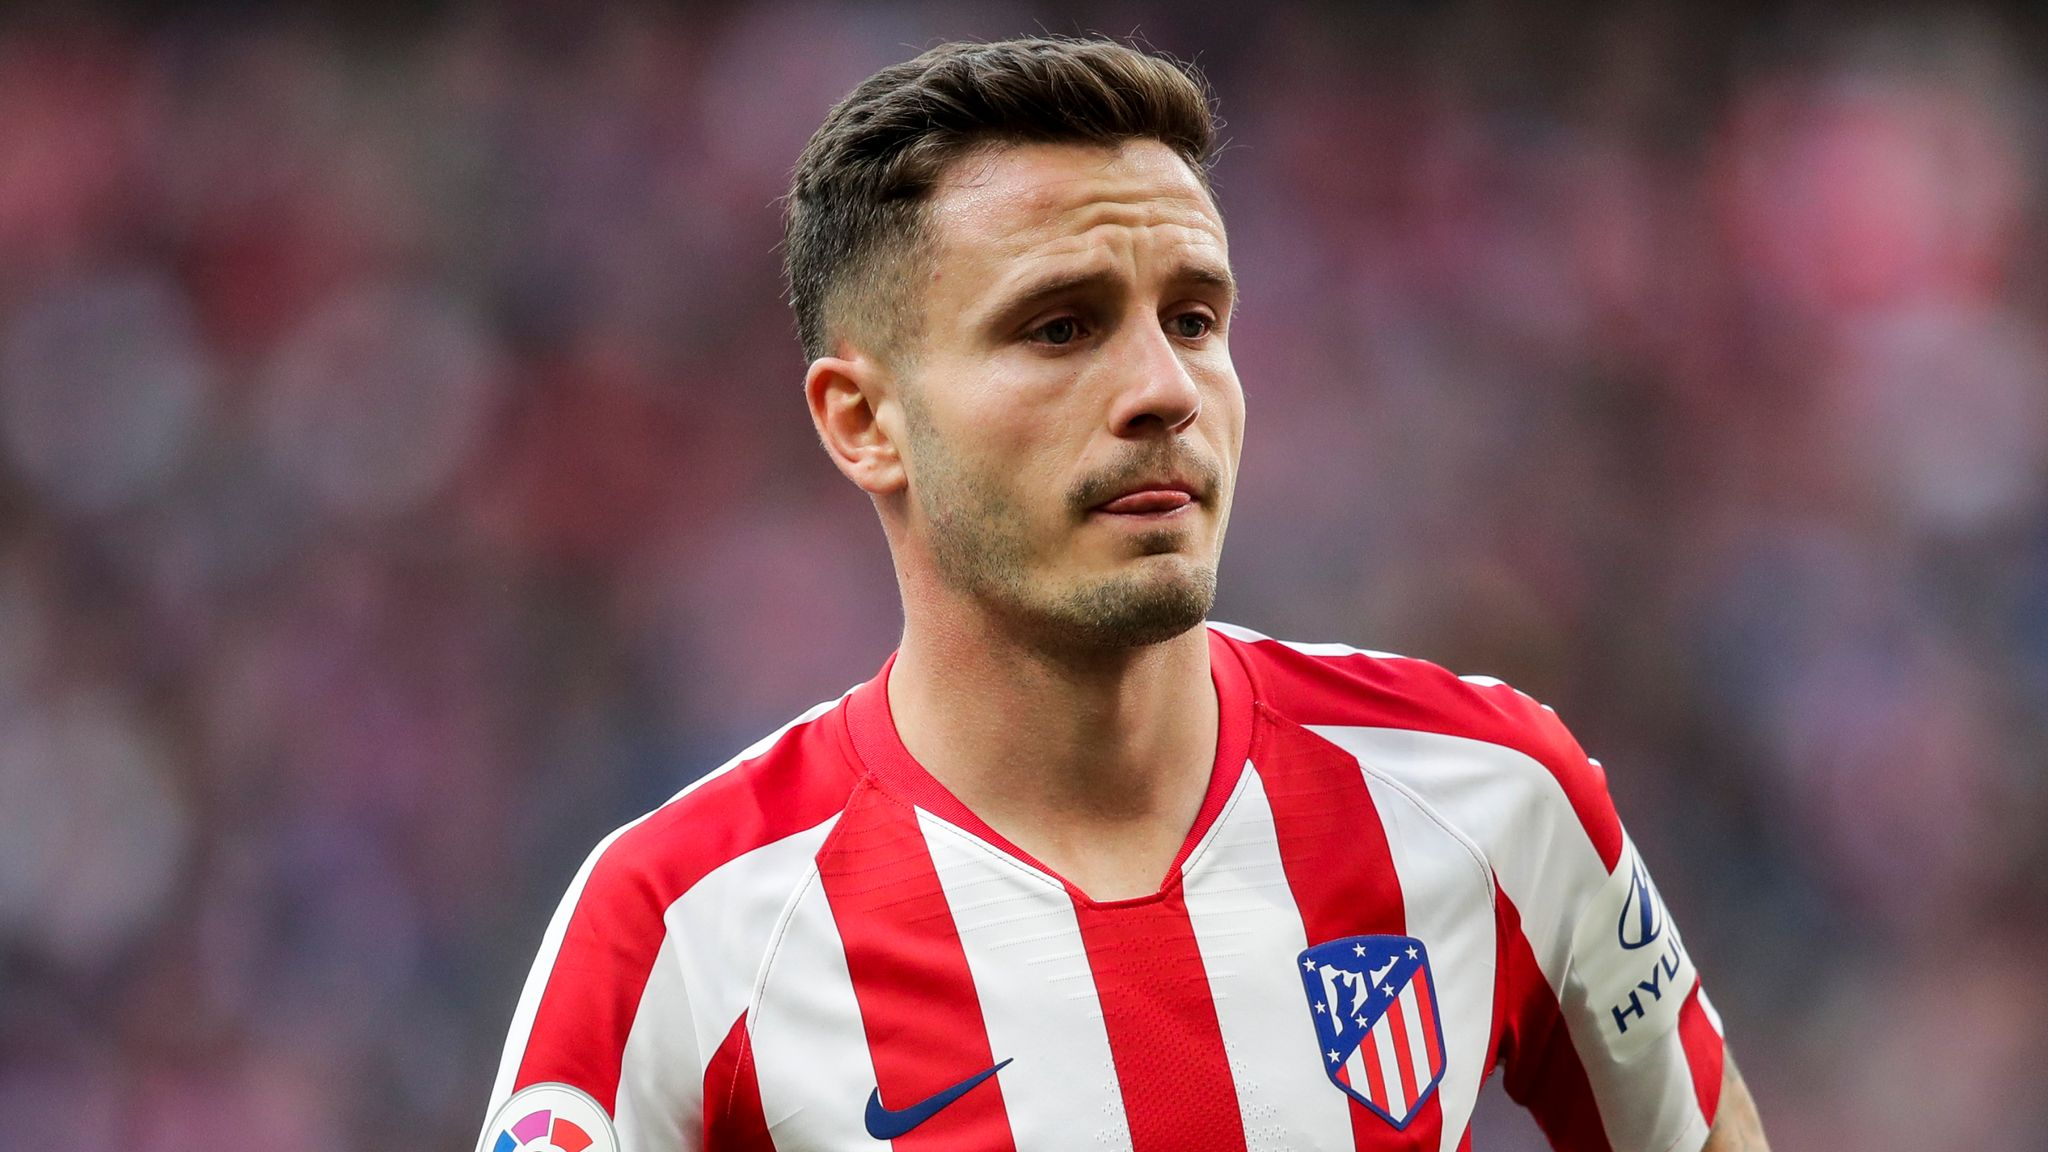 Saul Niguez: Atletico Madrid midfielder has fans guessing about his future  after cryptic post   Football News   Sky Sports